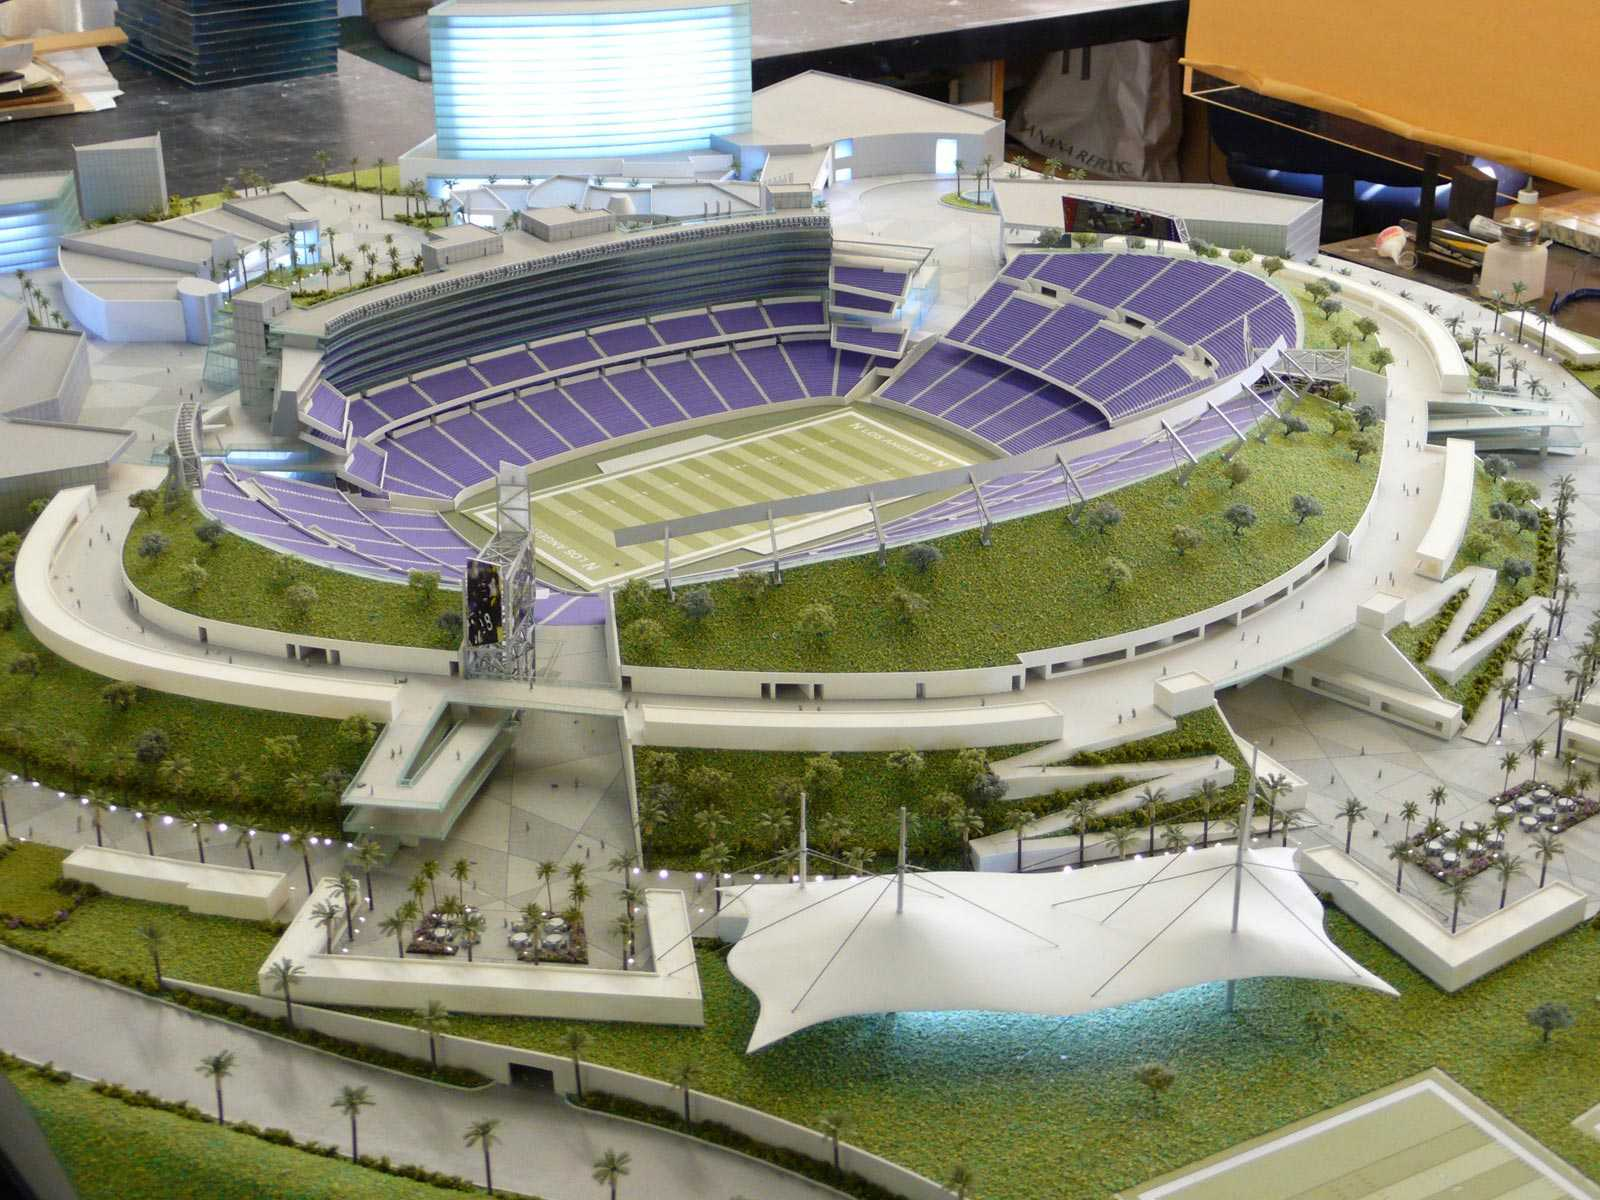 the new stadium fantasy sports effects on 2016-2-27 professional sports stadium development projects are major civic endeavors, and city  by the local government and sports franchises that a new stadium will spur economic success in  an initial secondary data analysis was first conducted to look at the effects of stadium.